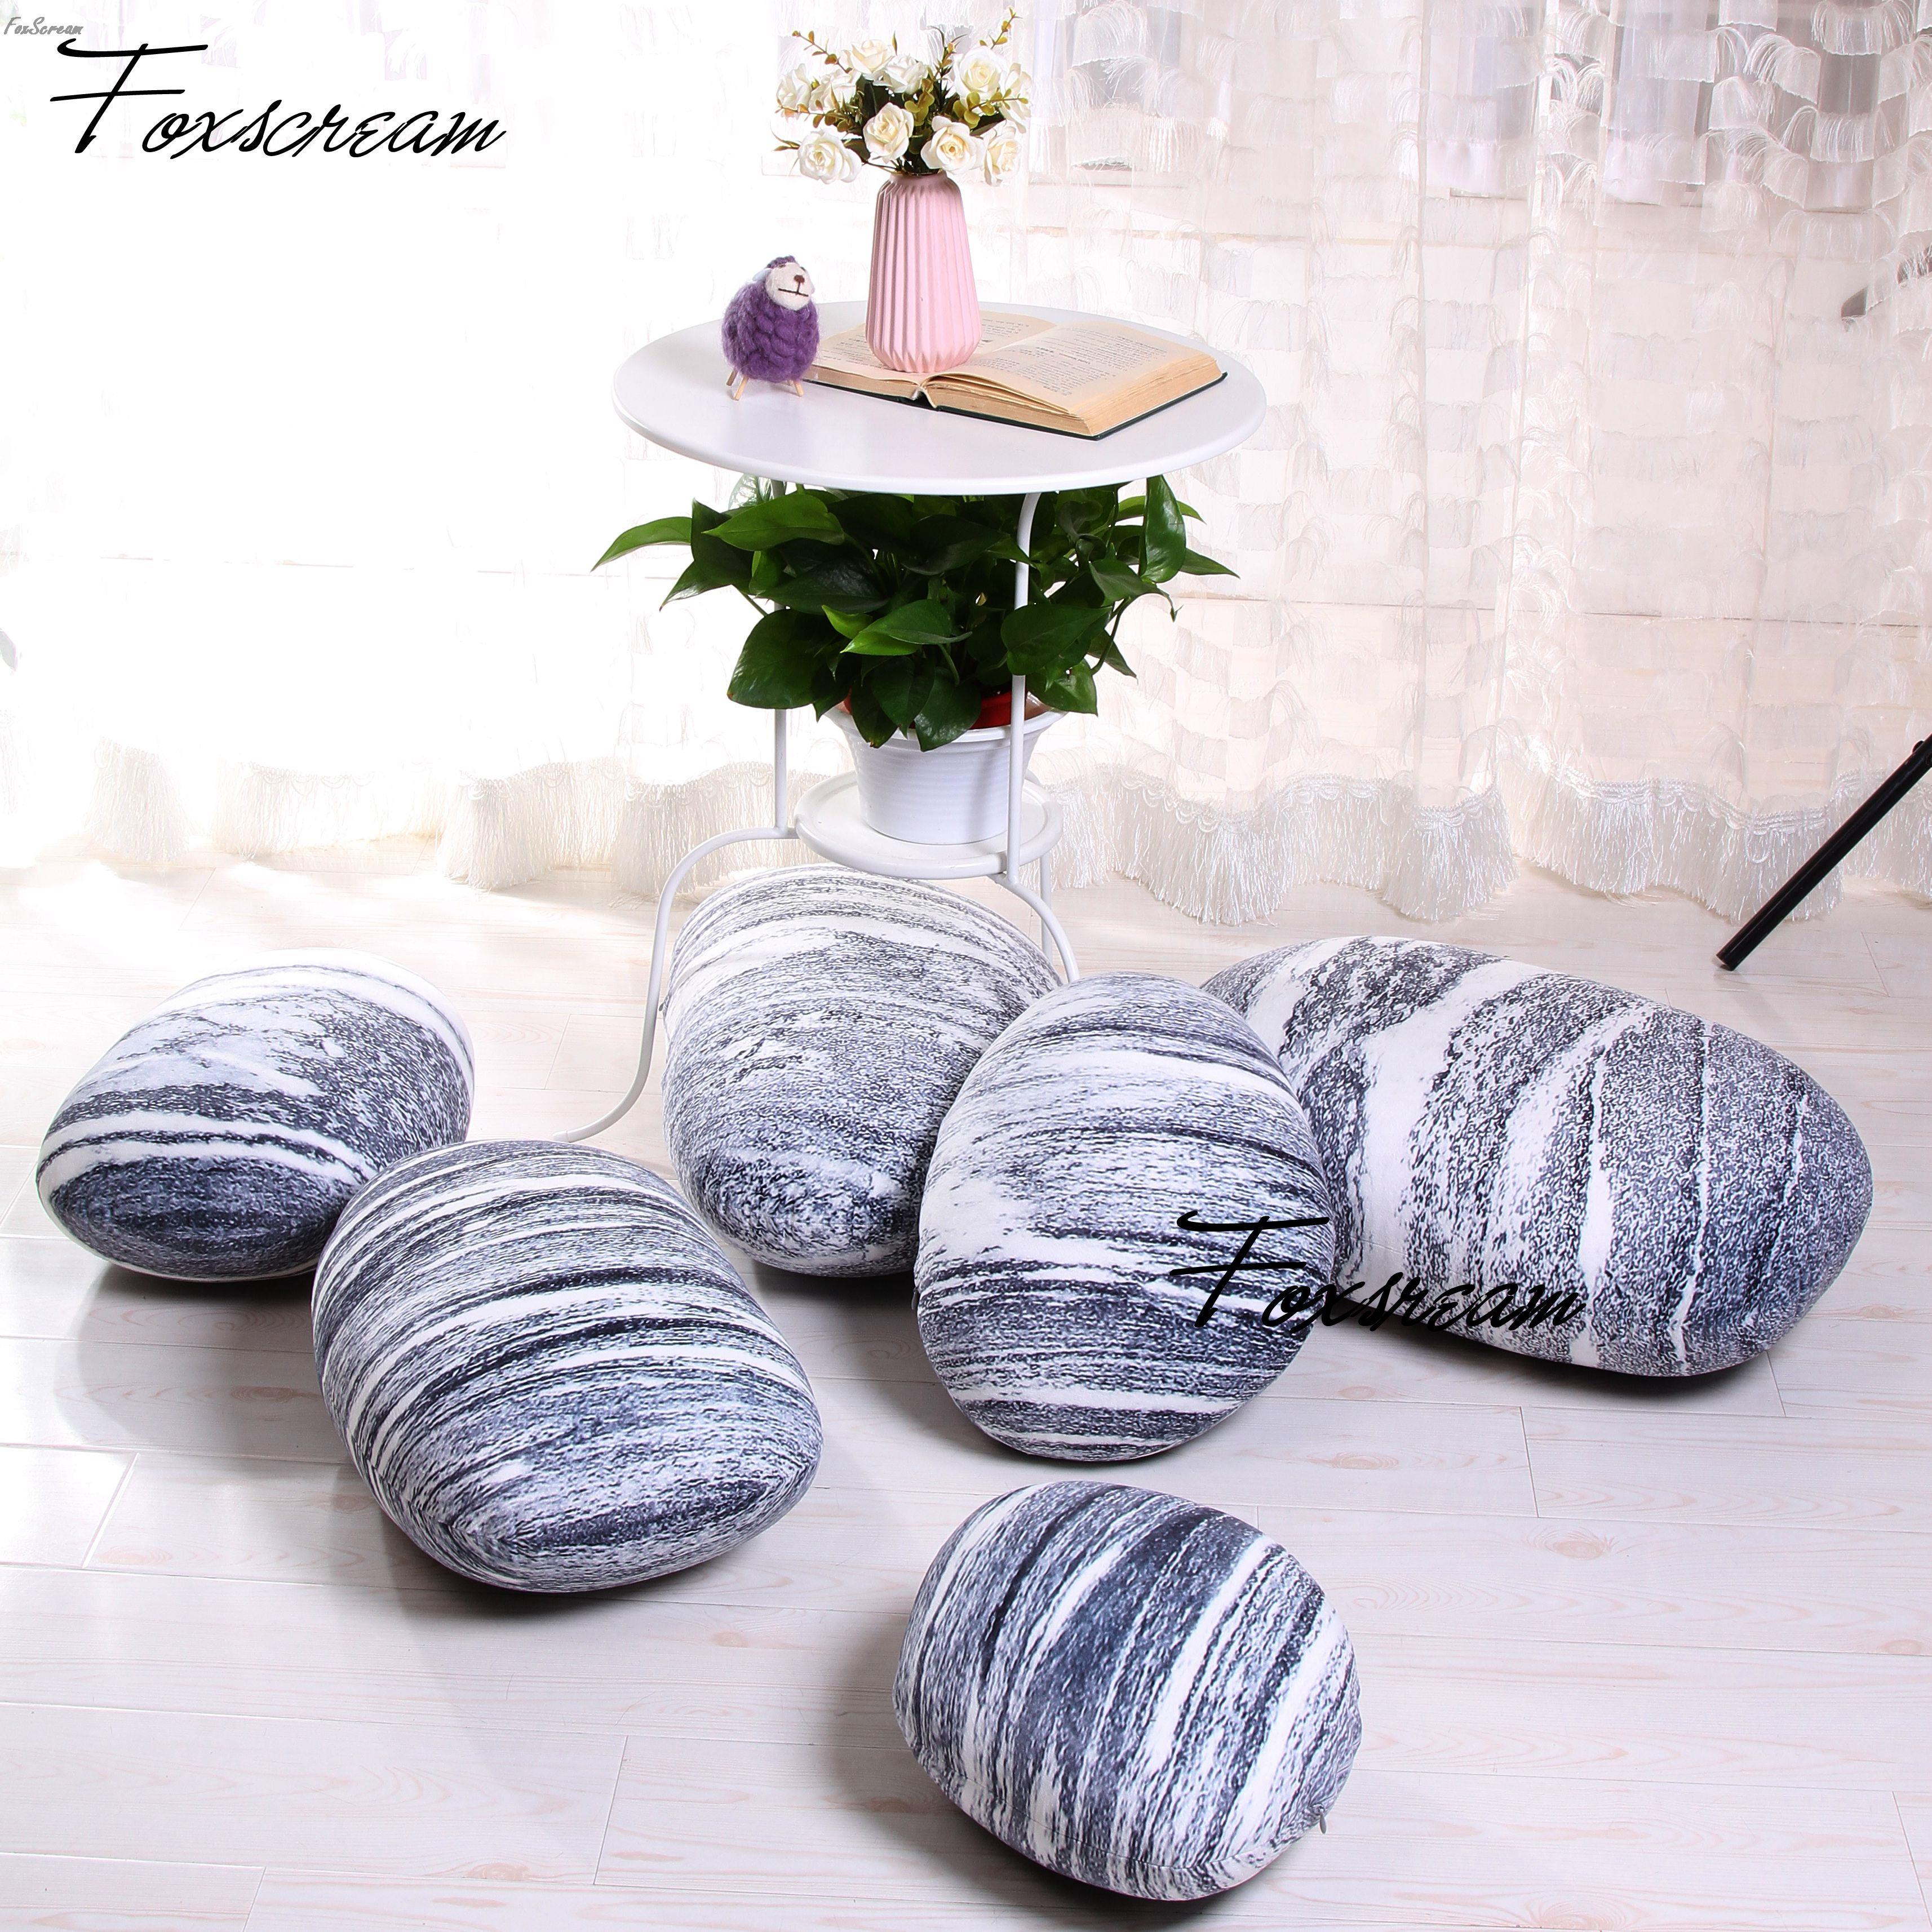 Modern Outdoor Cushions 6 Pieces Stones Pillows Covers,Colorful Country  Road Pebble Floor Cushions Cover